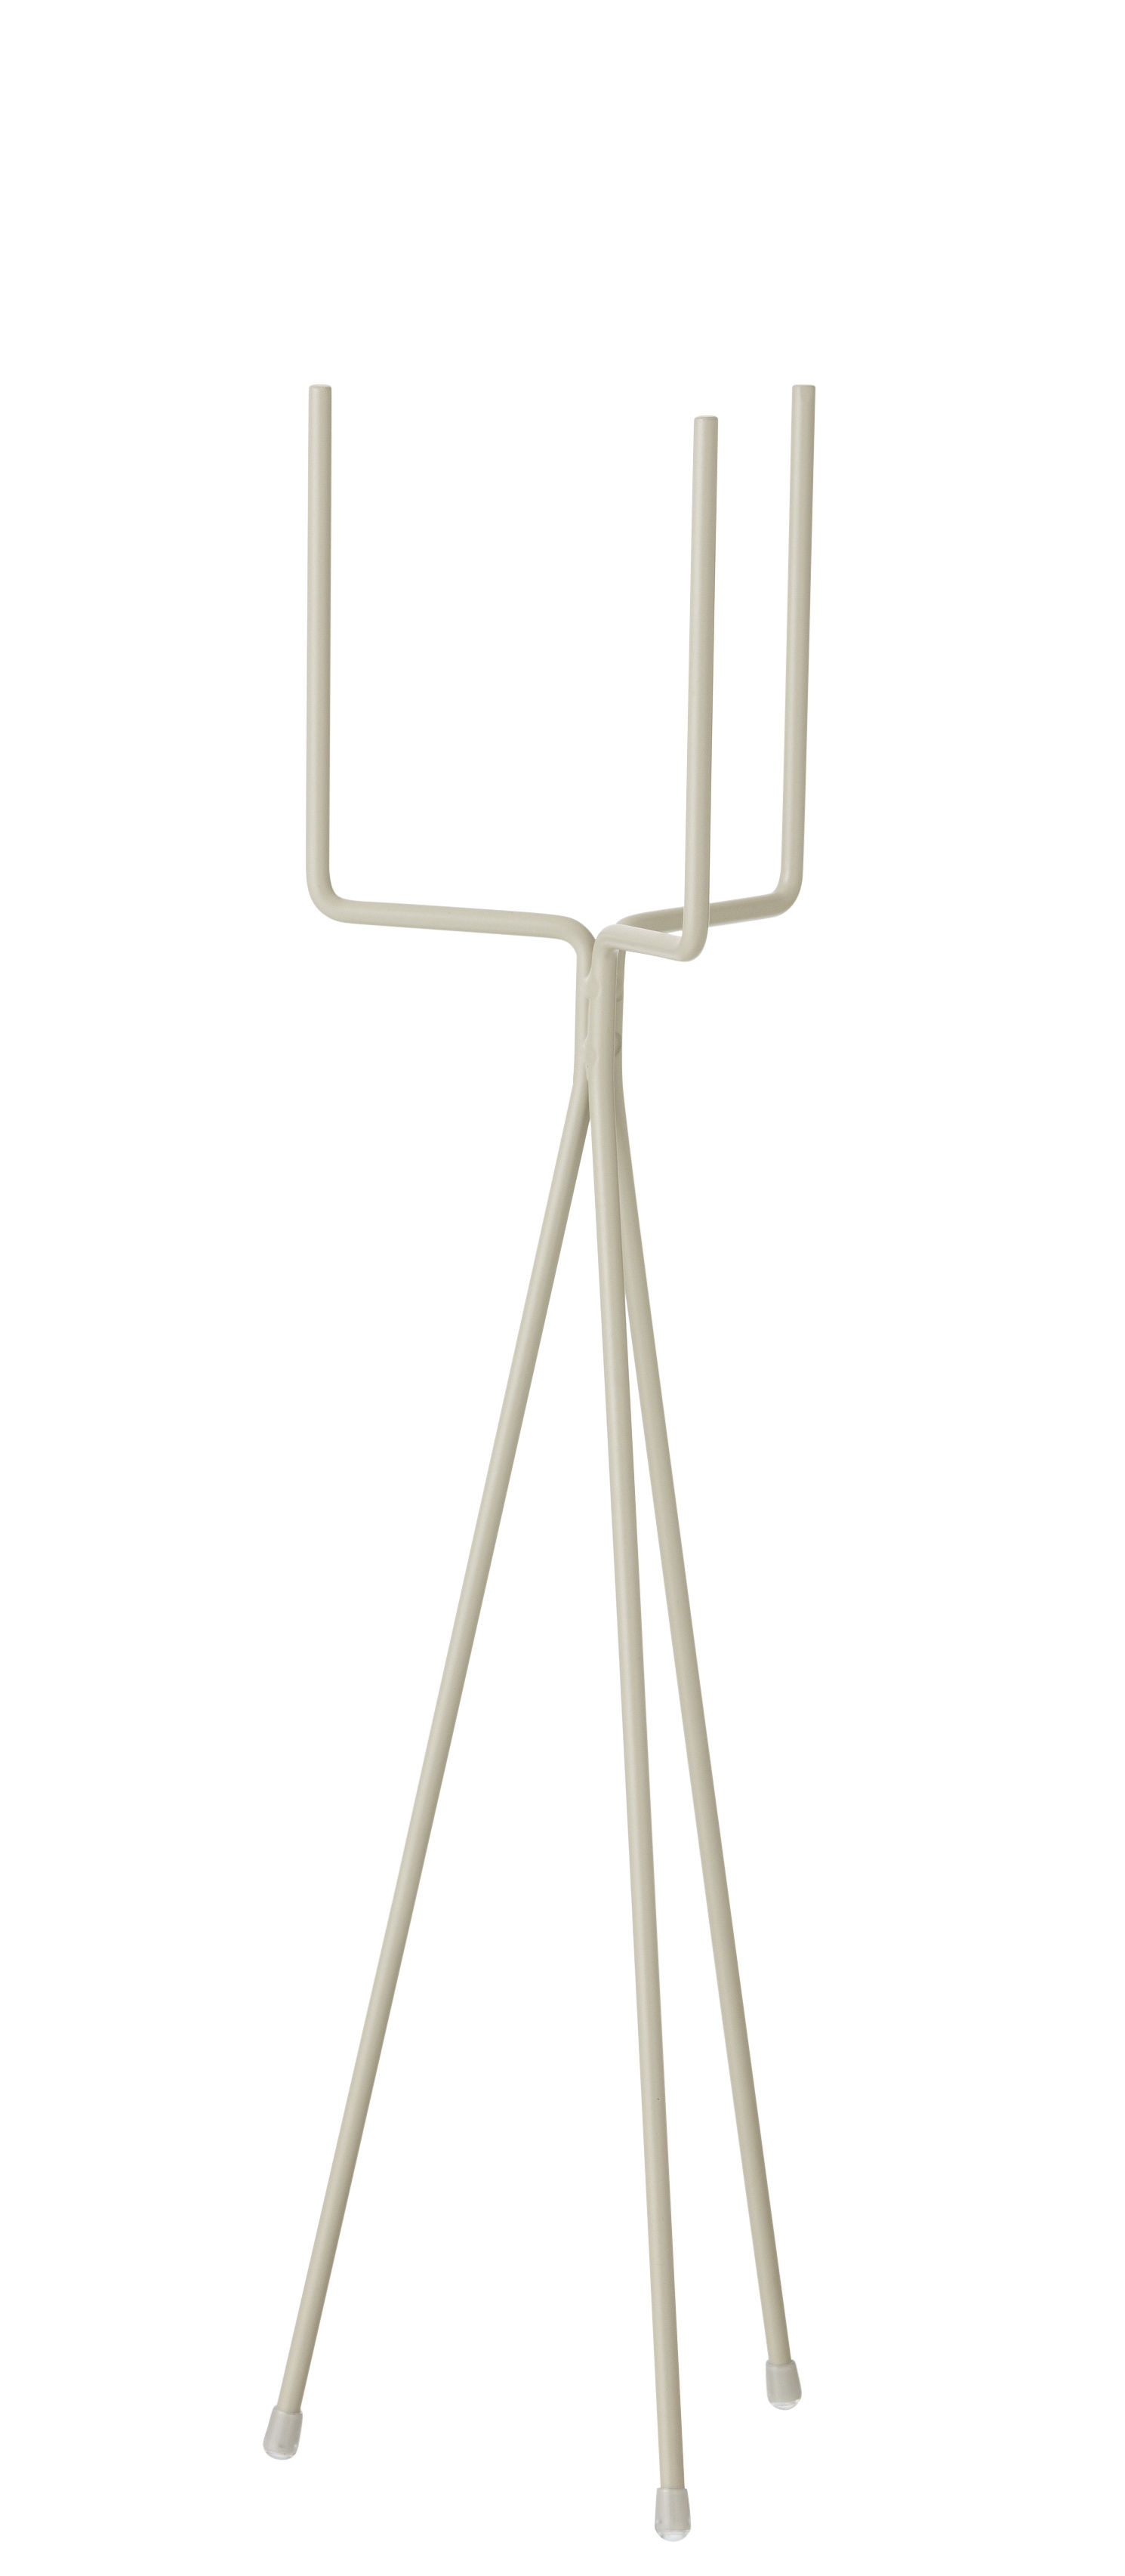 Outdoor - Pots & Plants - Plant Stand SMALL Flowerpot stand - For flower pot - H 50 cm by Ferm Living - Grey - Lacquered steel